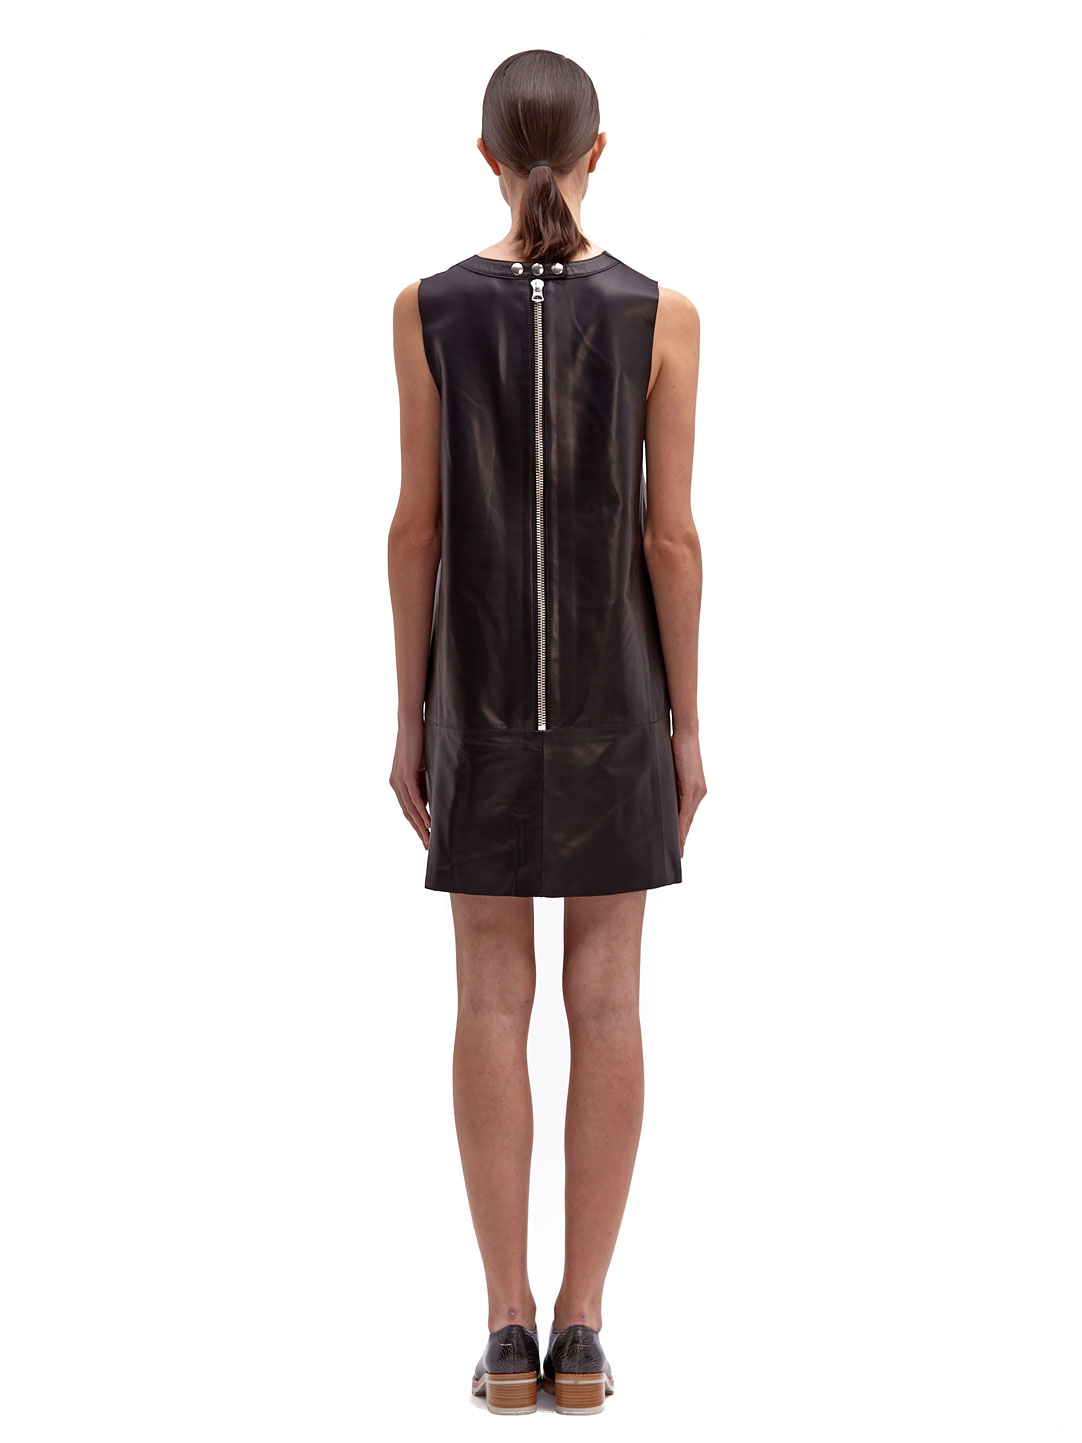 River Island Black Leather Shift Dress